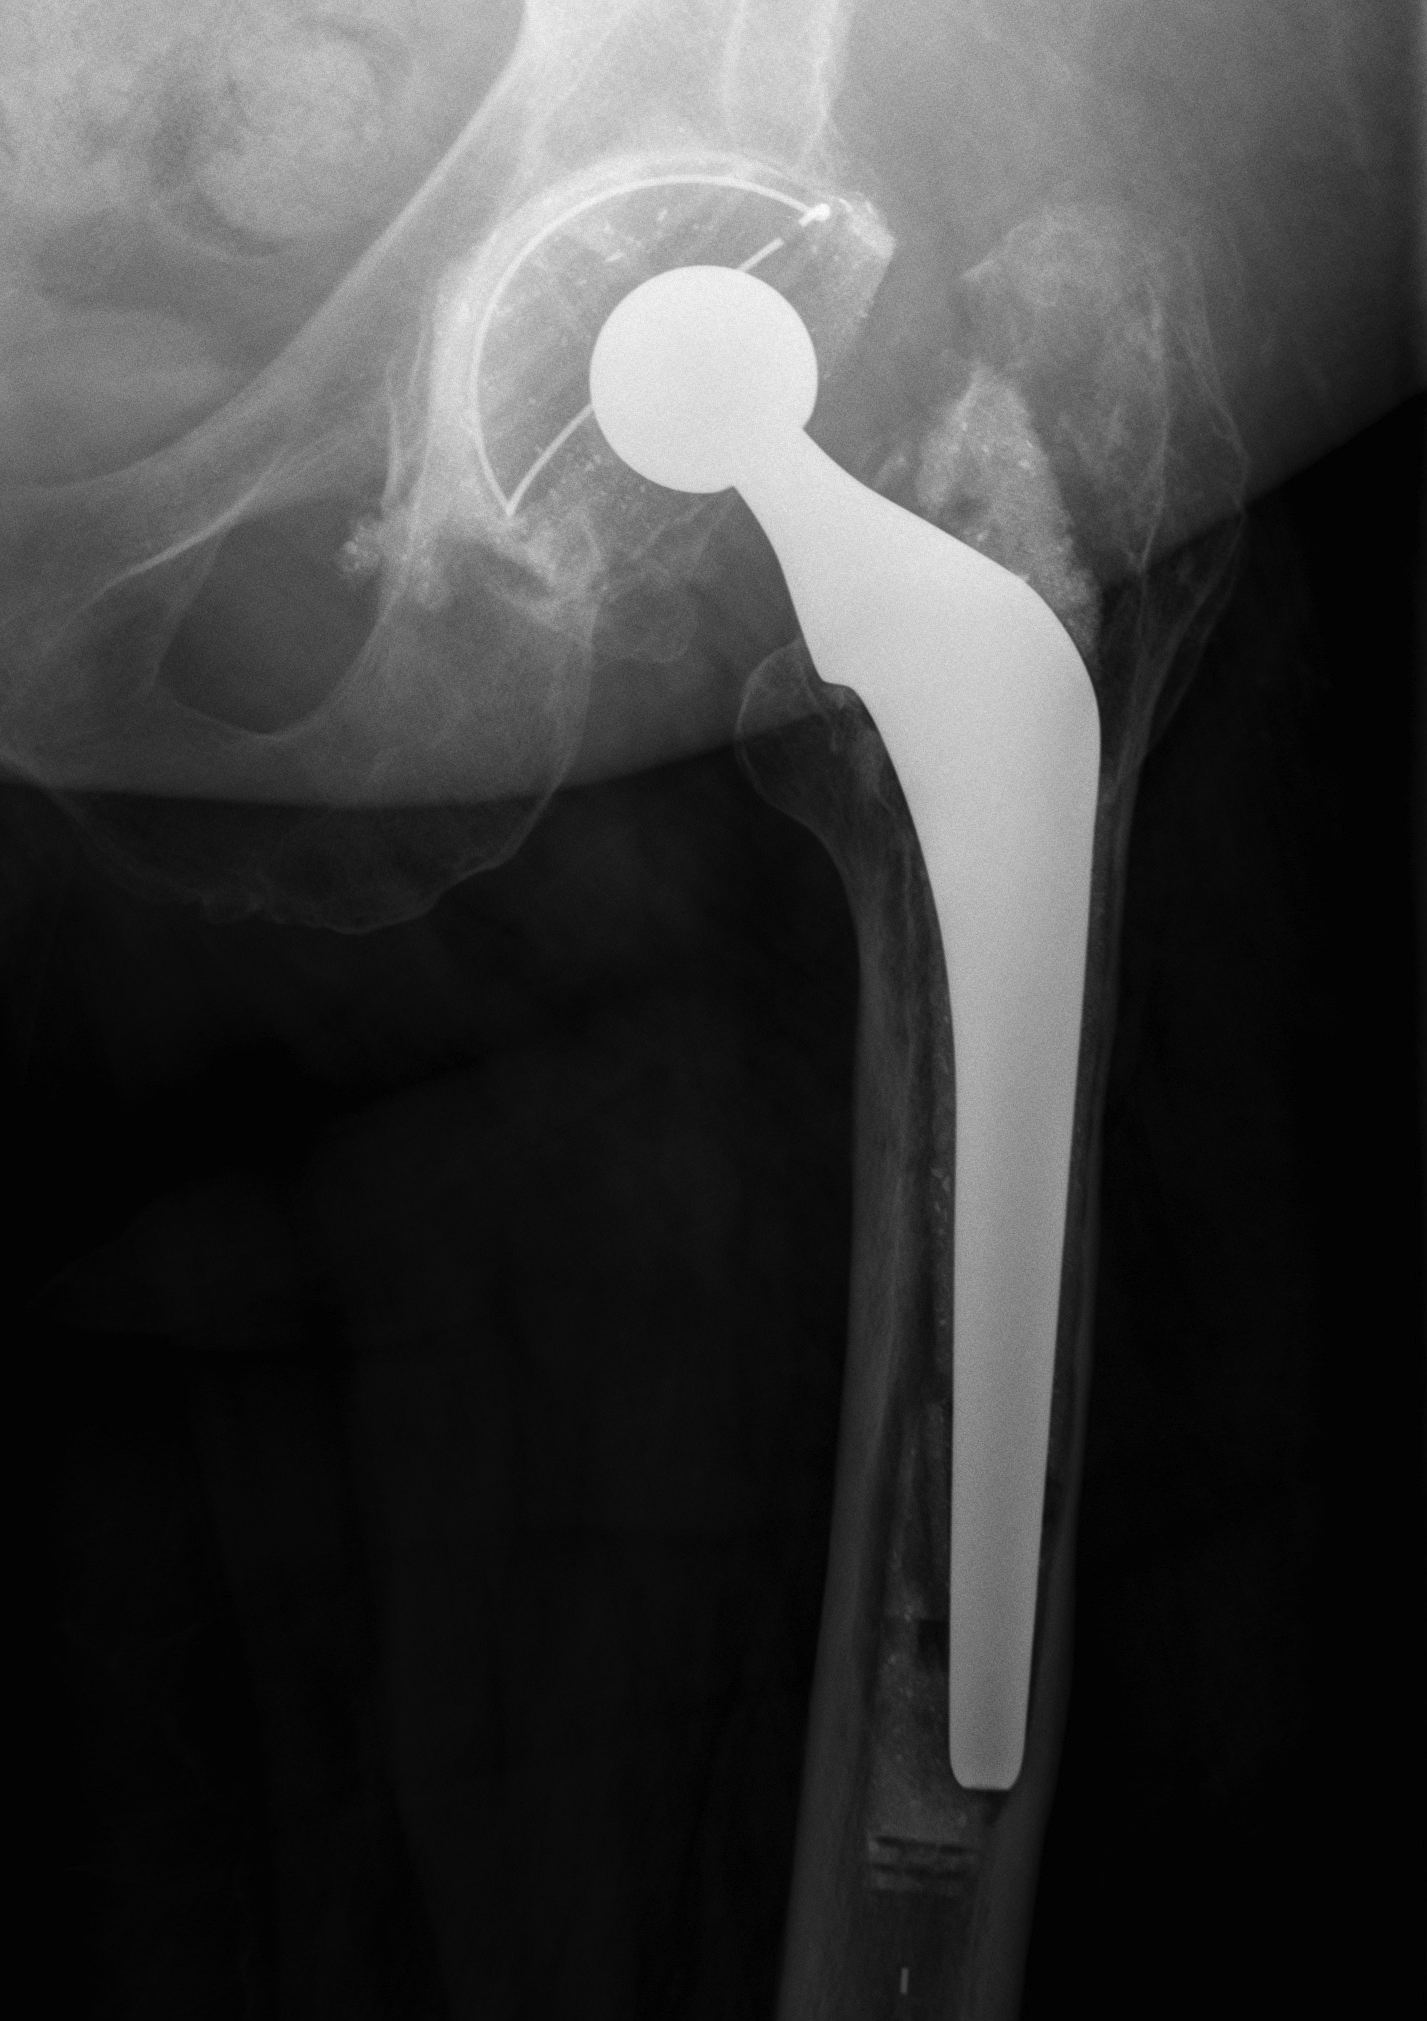 cortical defect femoral